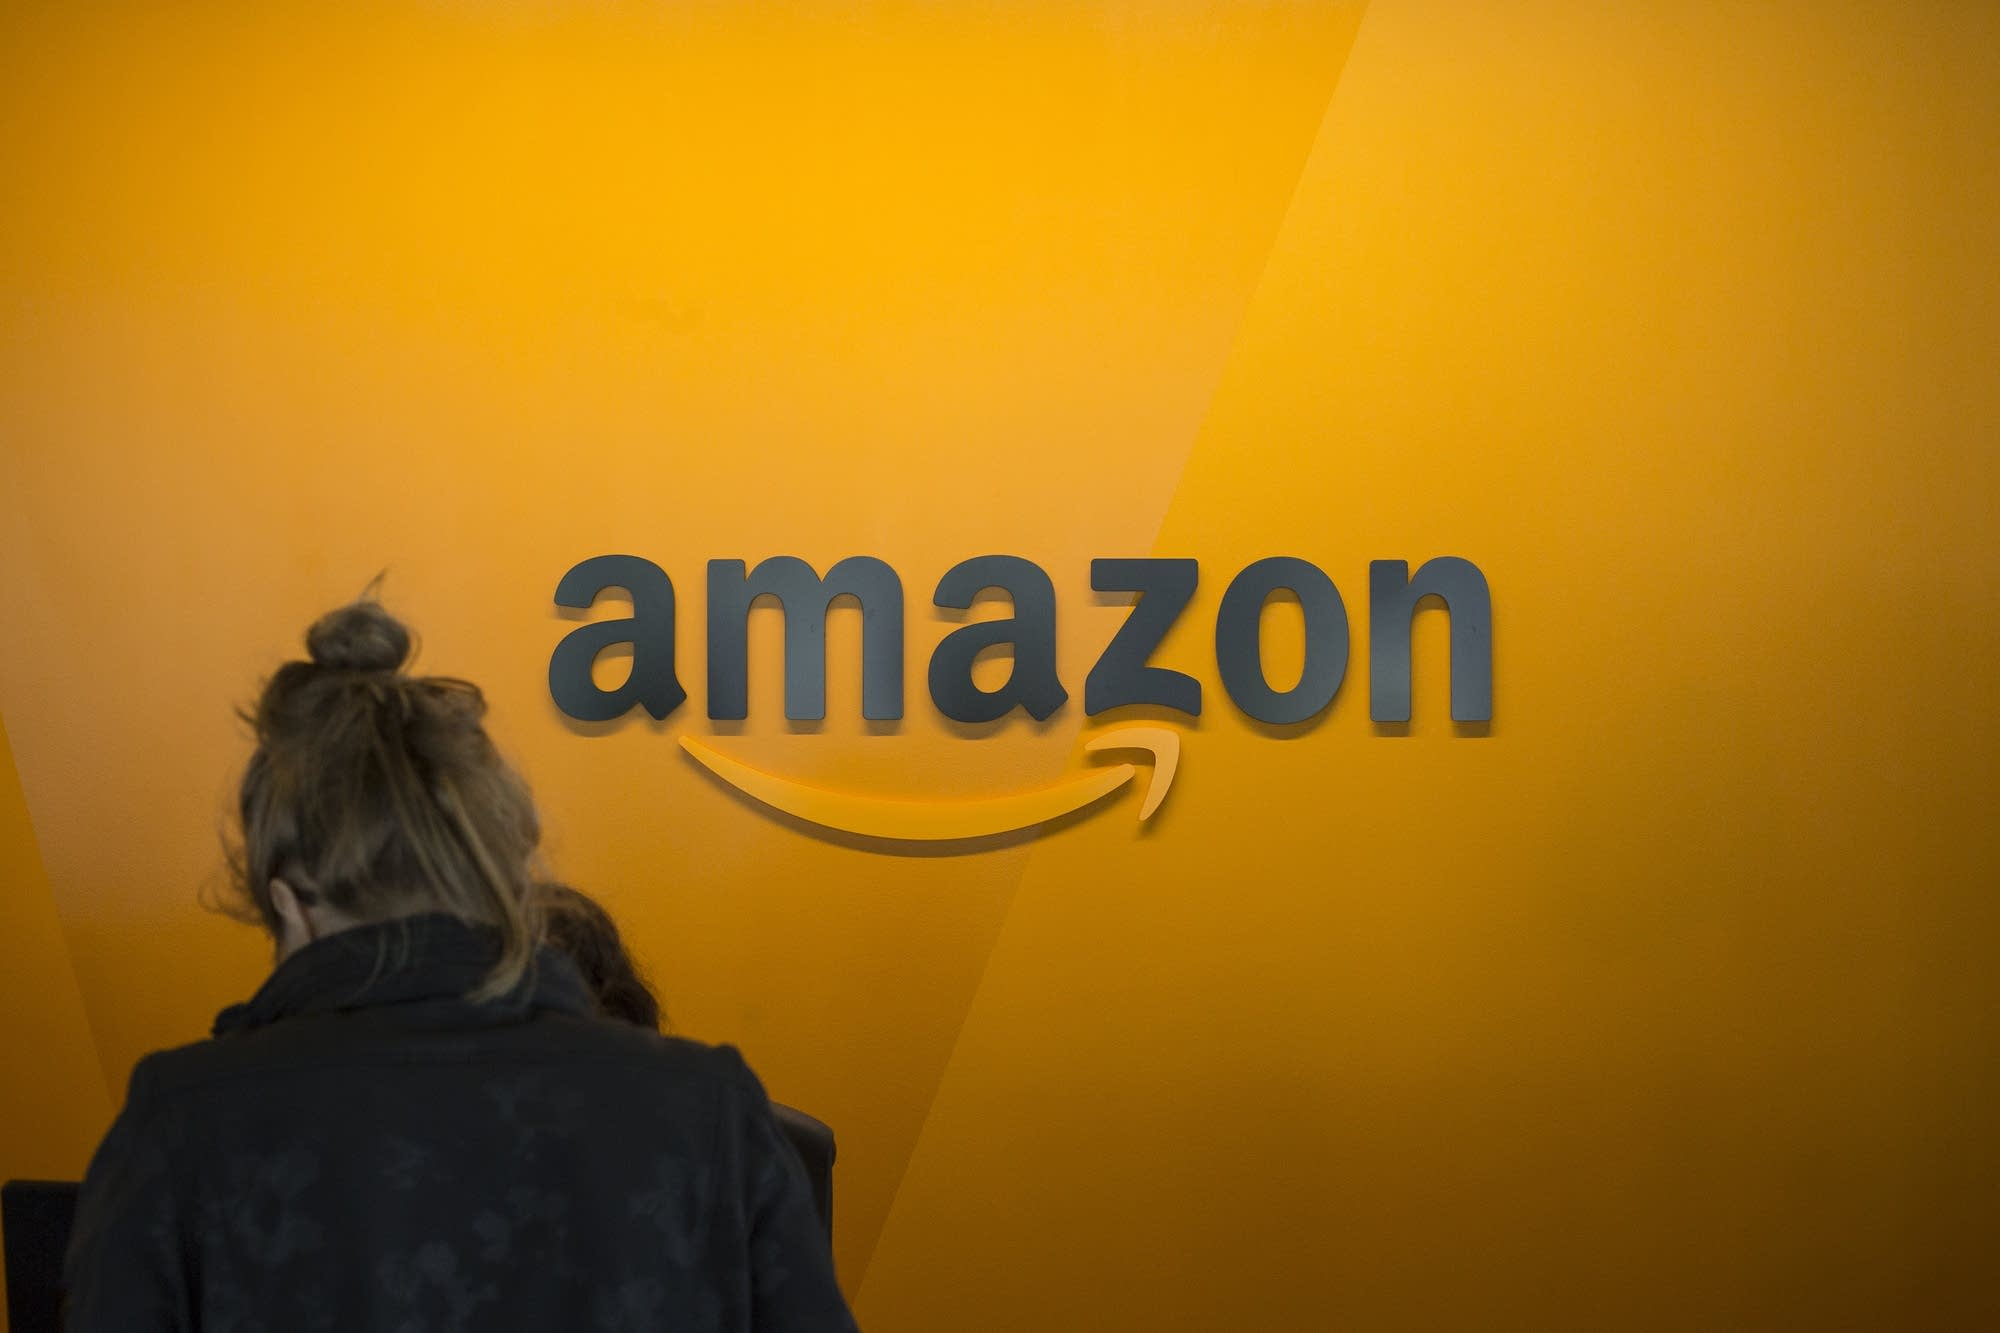 Amazon expands Alexa hub in Boston with 2000 new jobs